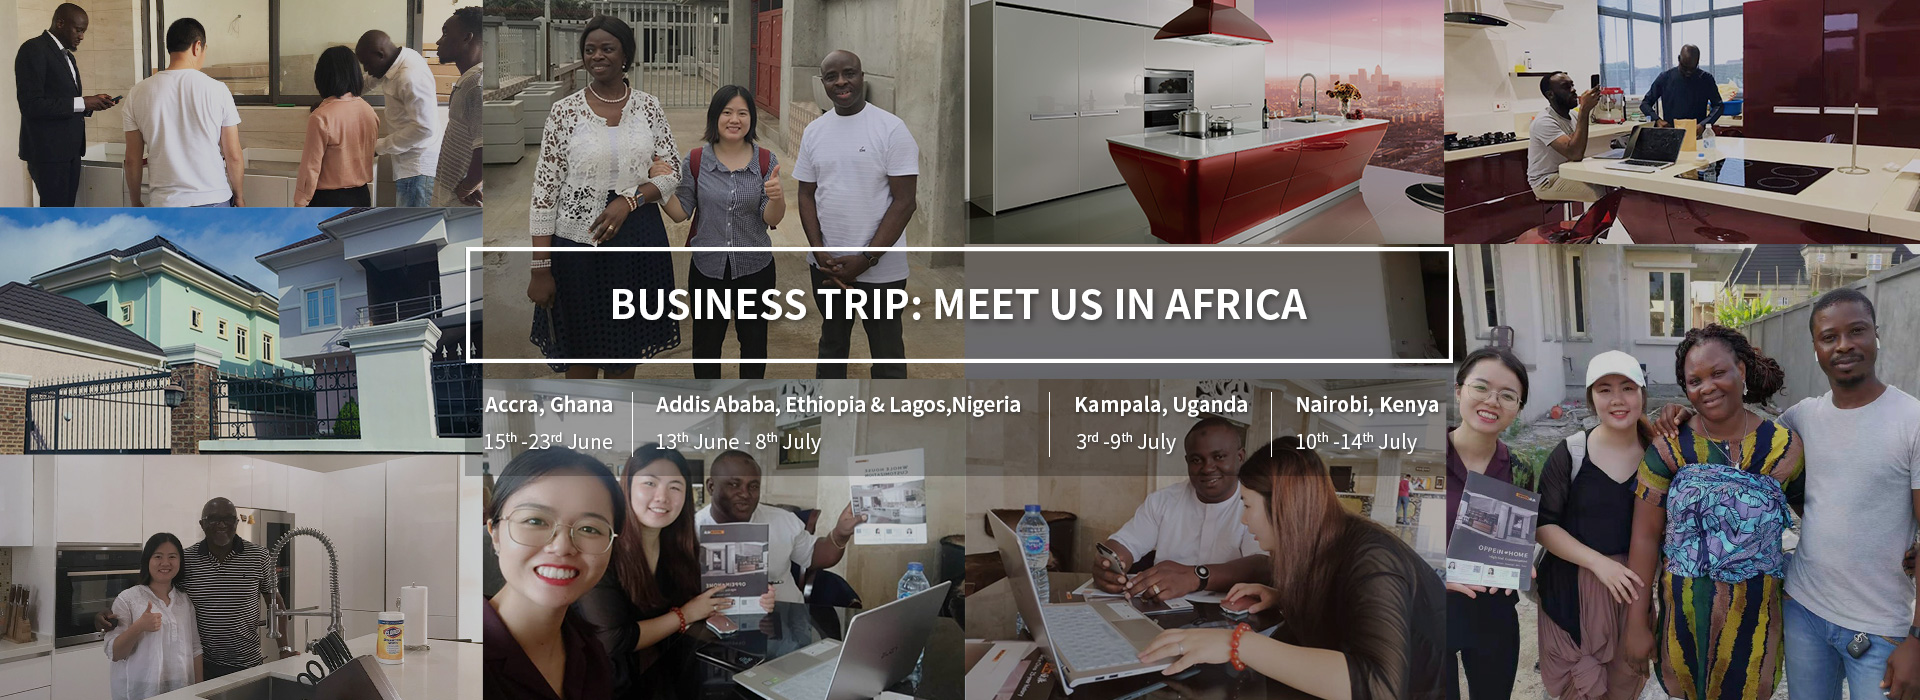 OPPEIN-Business-Trip-to-Africa-0618